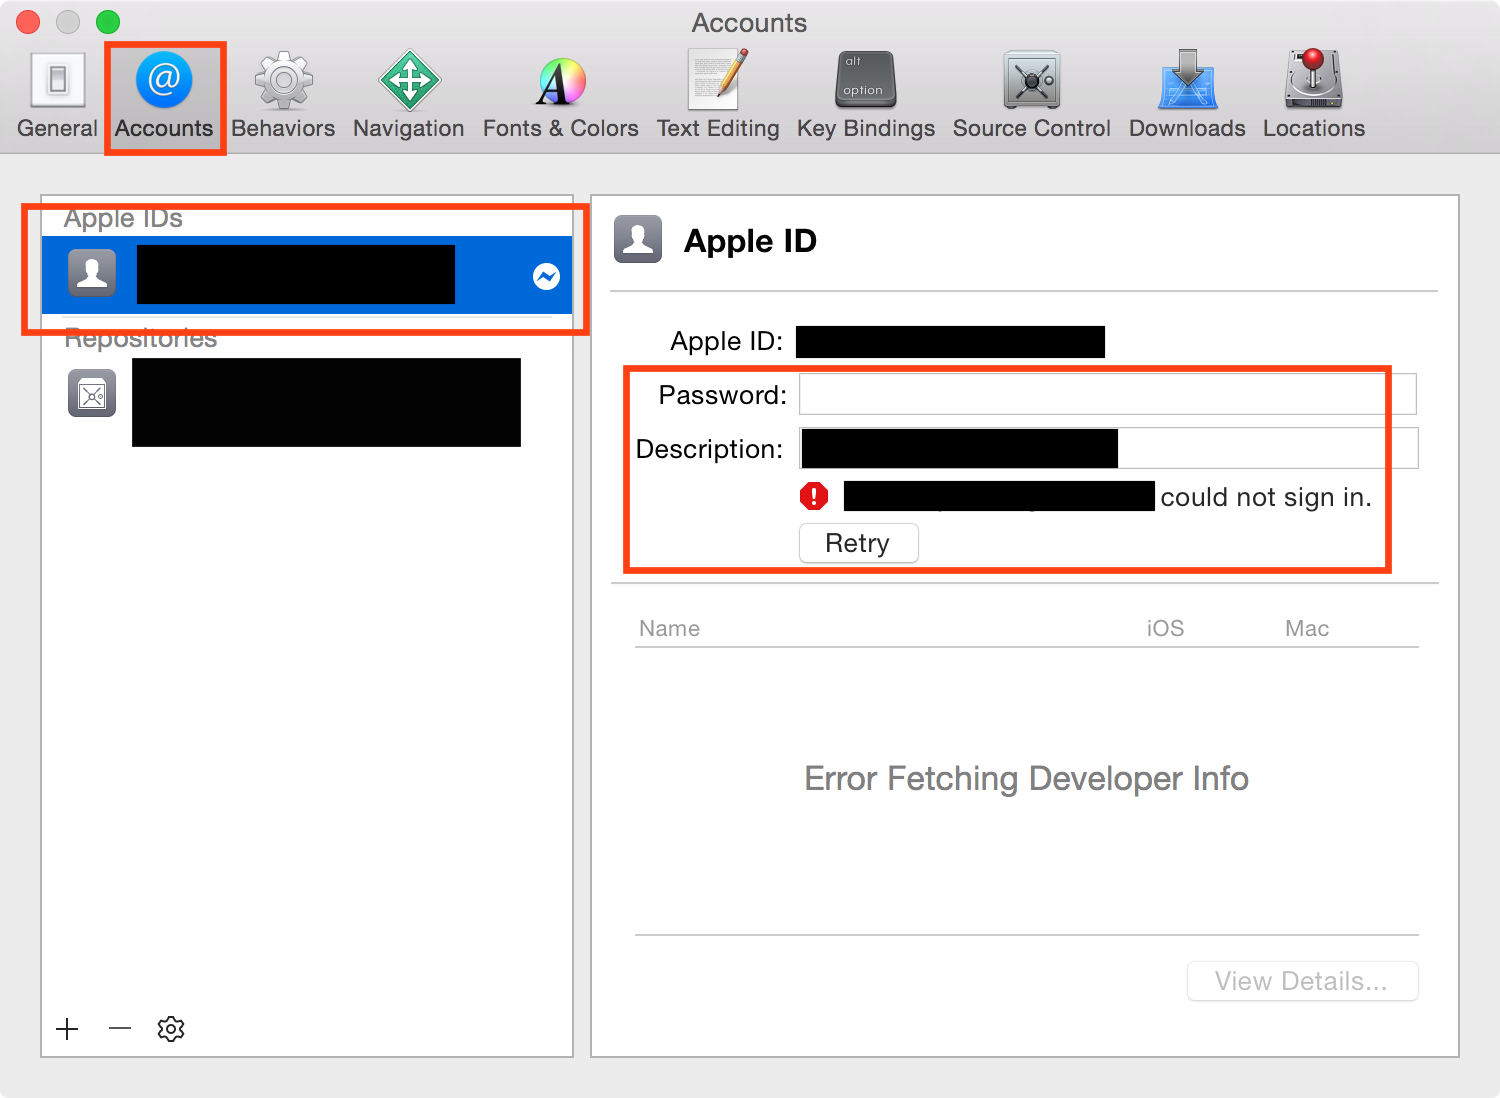 xcode7_04.png